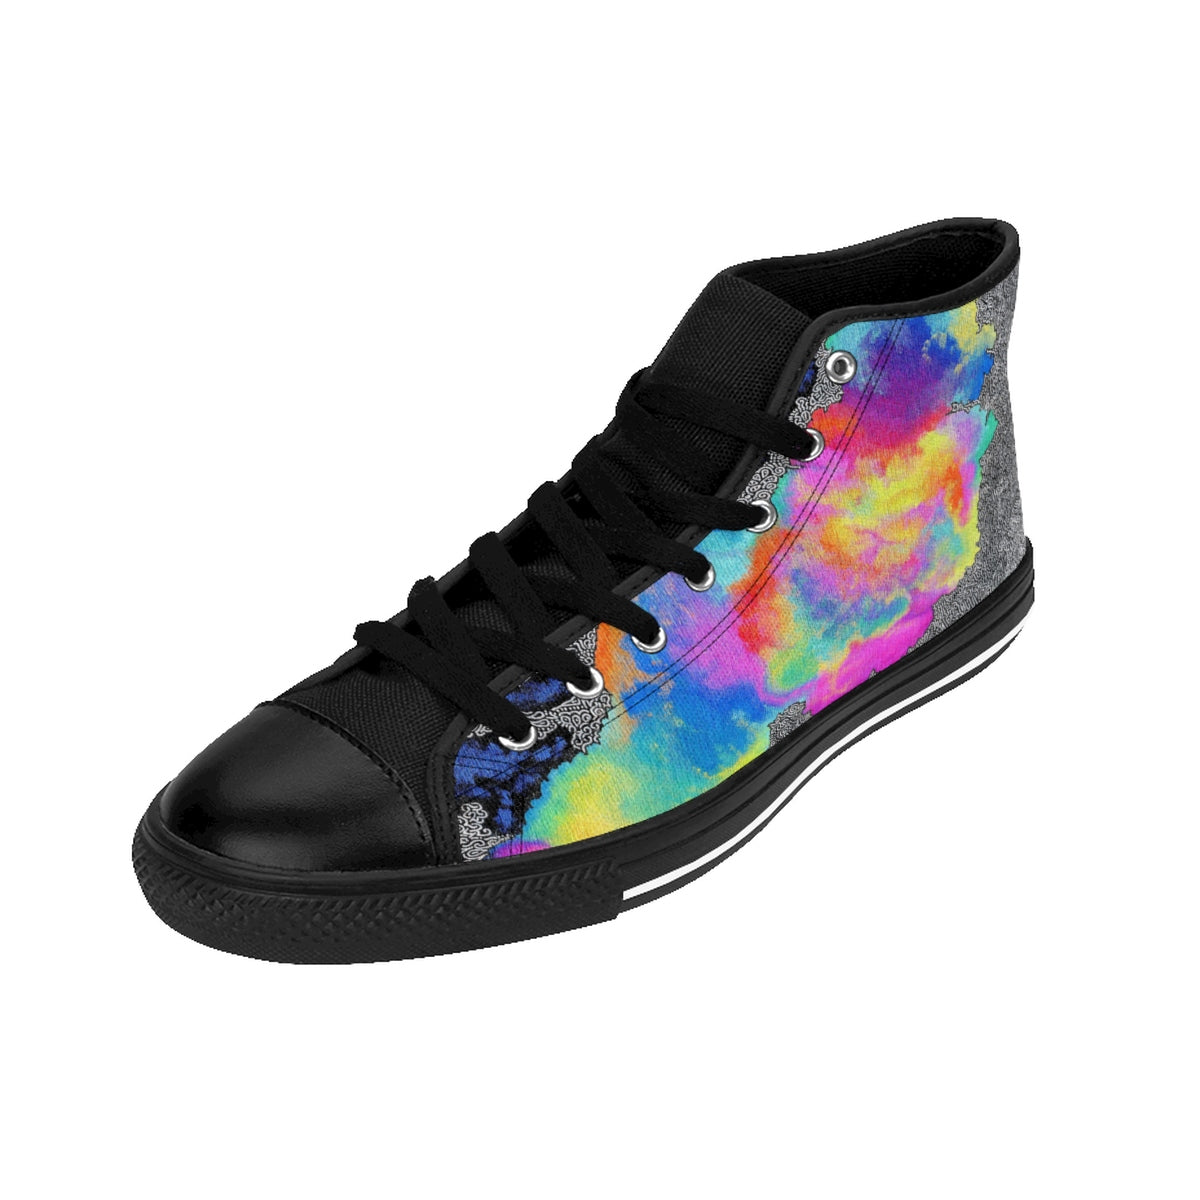 Taiga By Twilight High-top Sneakers